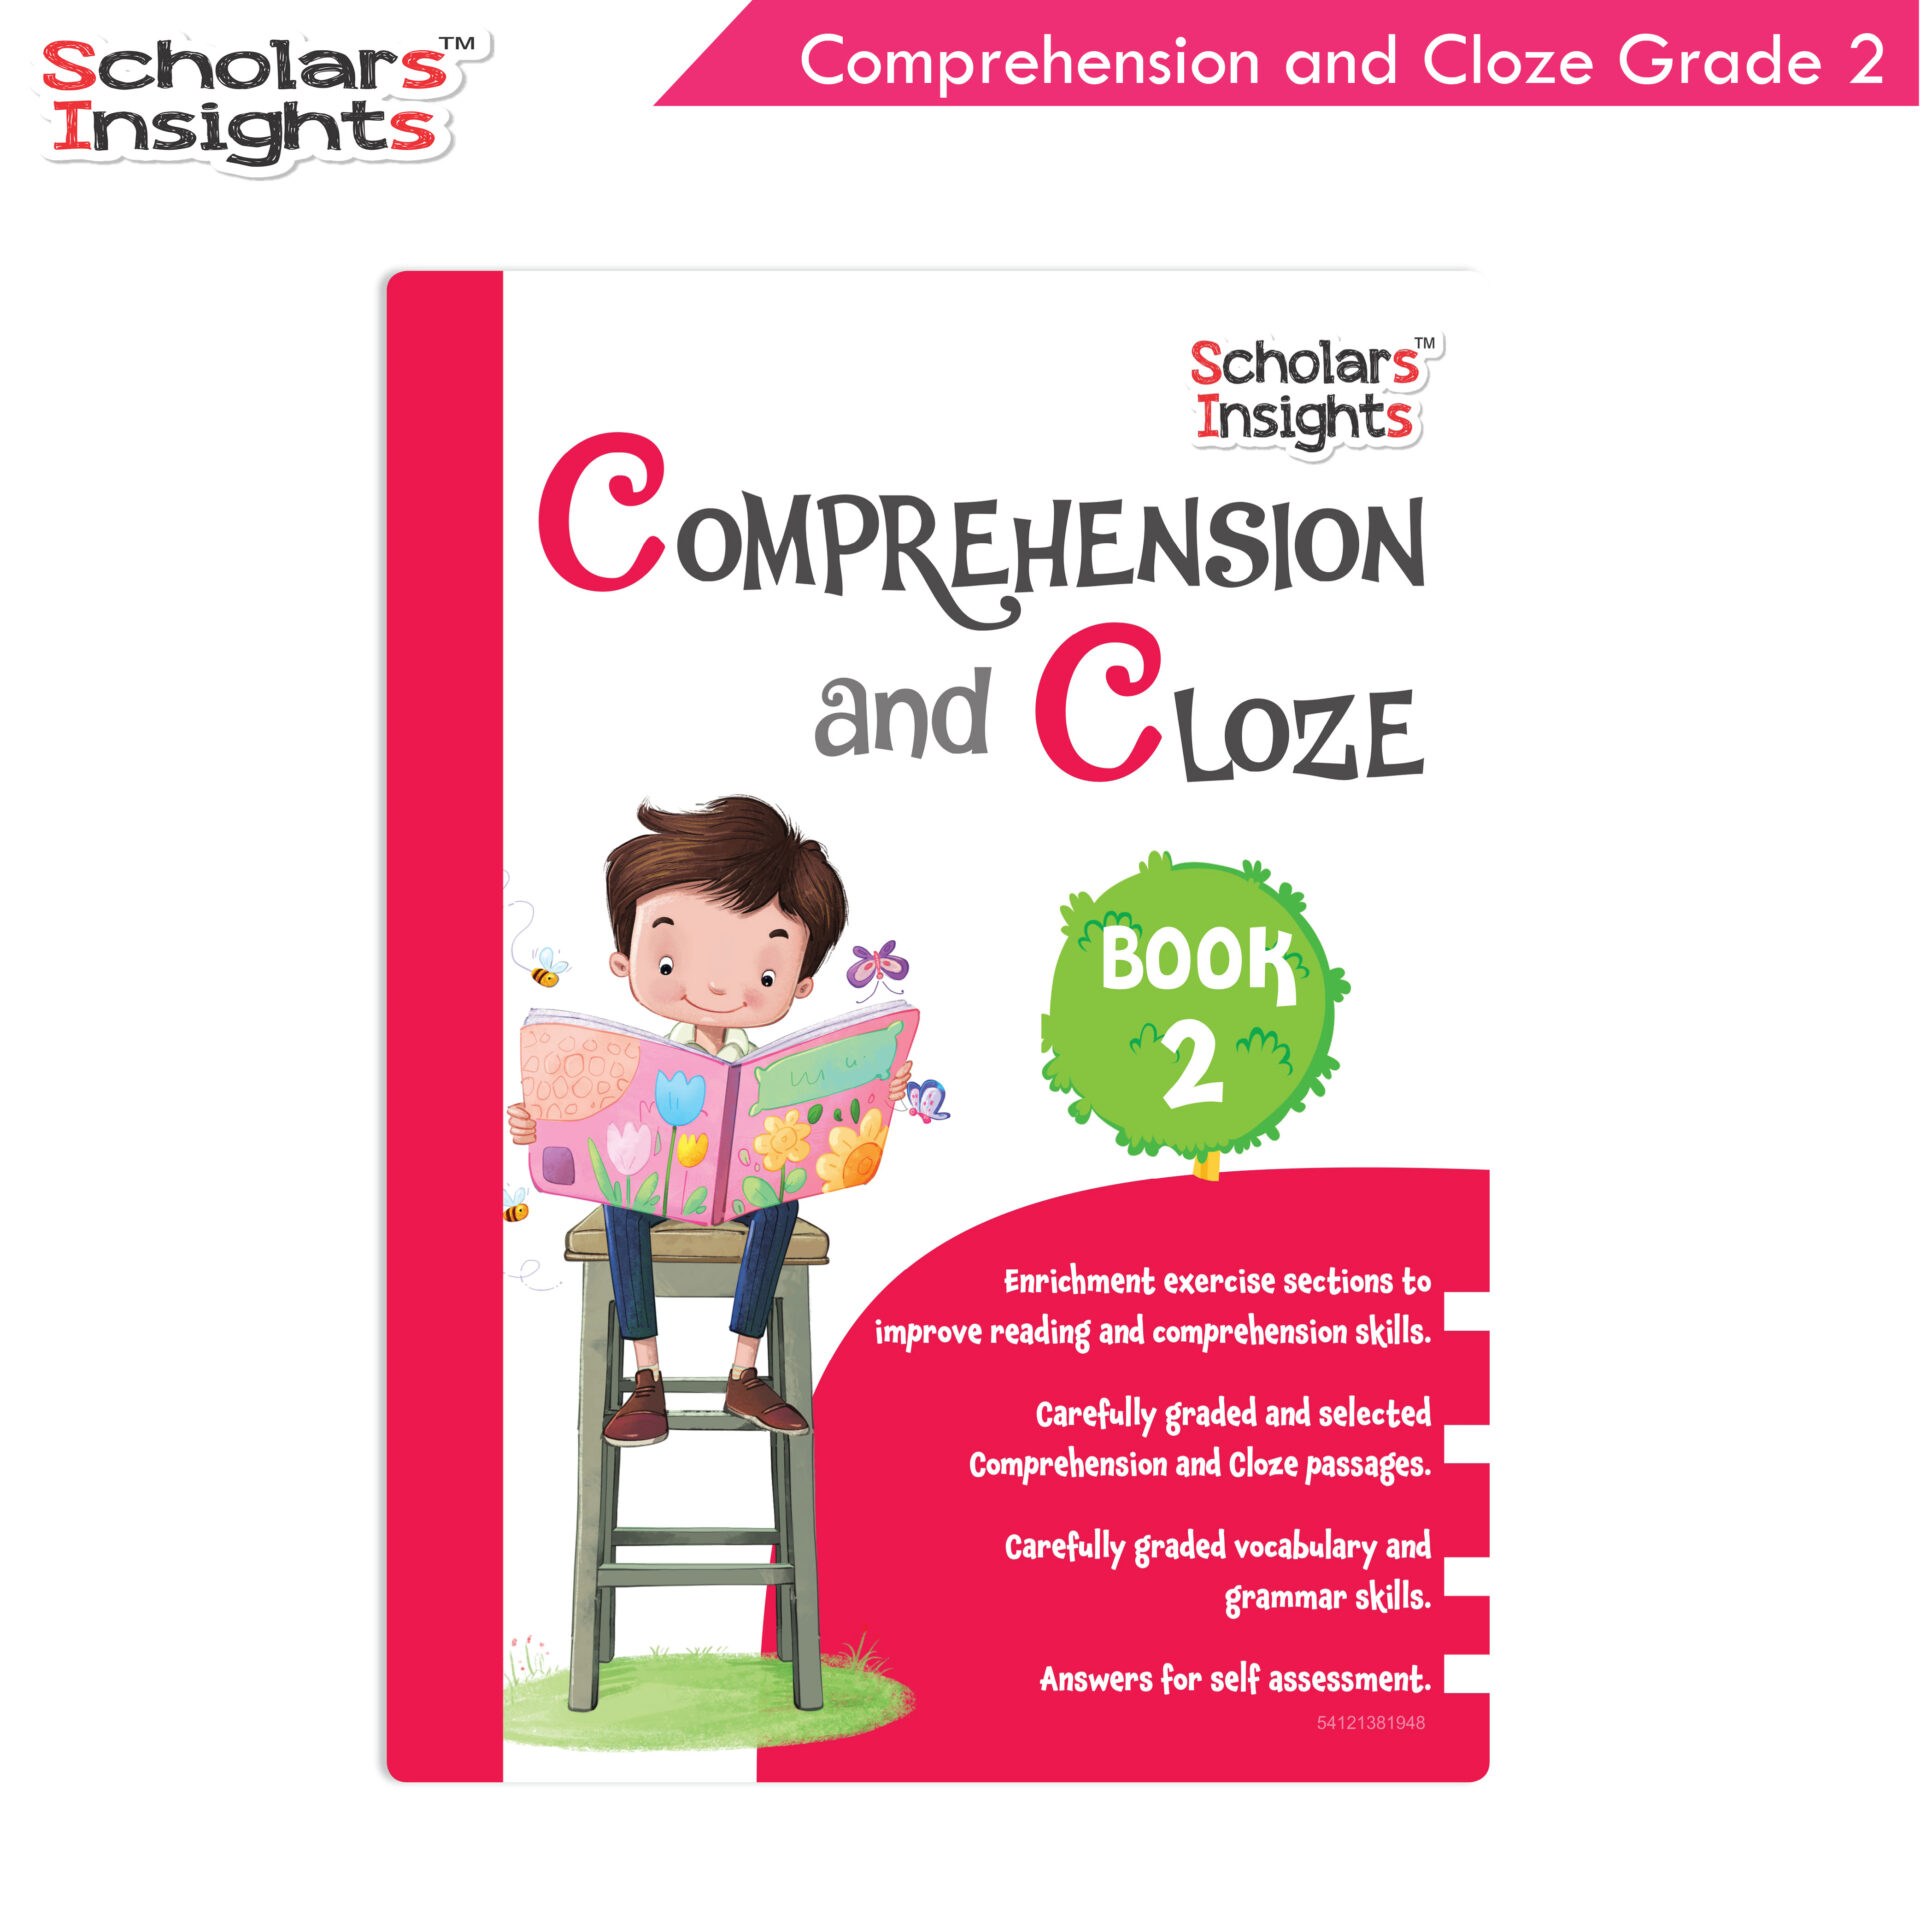 Scholars Insights Comprehension and Cloze Grade 2 1 1